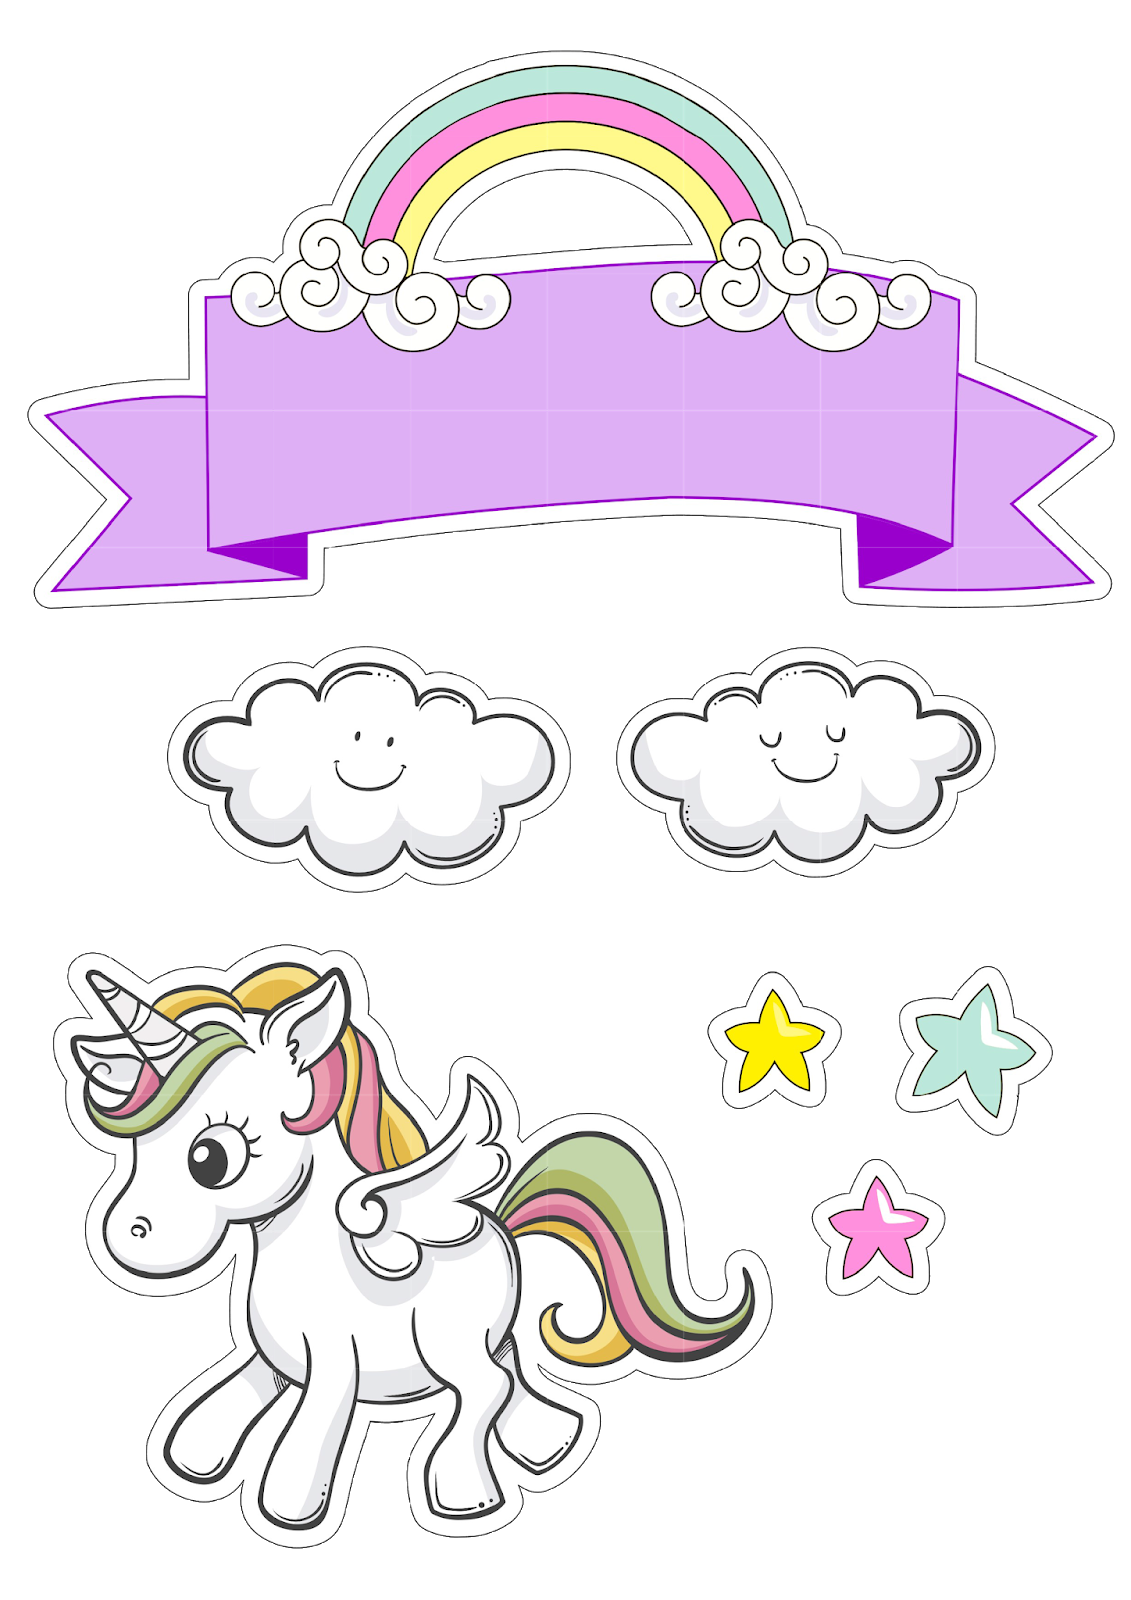 Topo unicornio png pixels. Excited clipart party horn